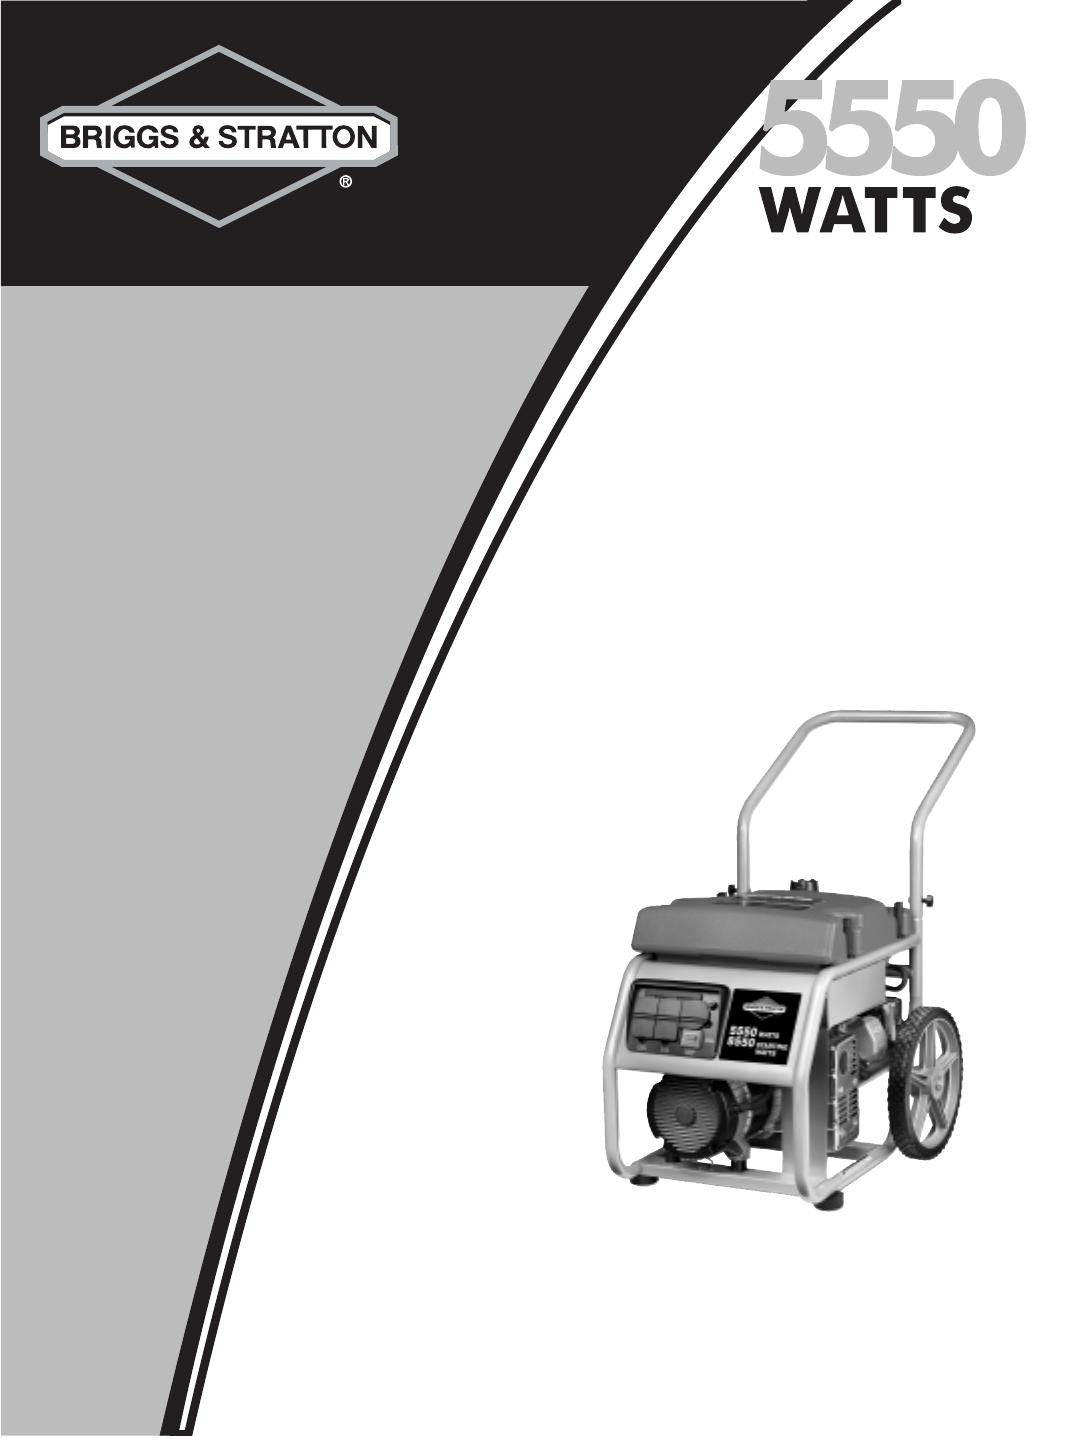 briggs stratton portable generator 30324 user guide rh kitchen manualsonline com briggs and stratton 5500 watt generator manual briggs and stratton 5500 watt generator owner's manual